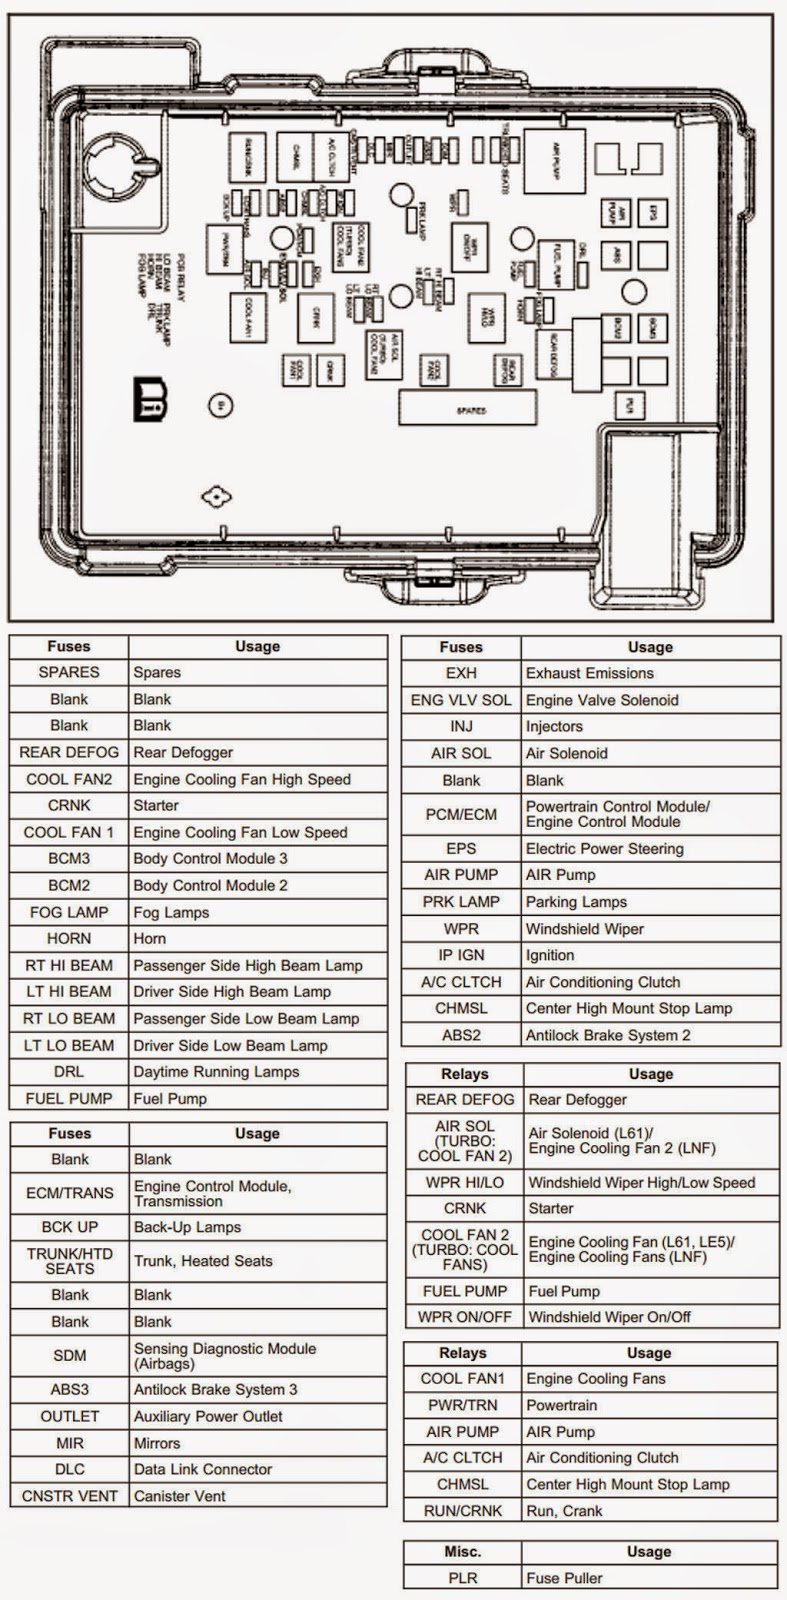 2010 cobalt fuse box wiring diagram db  2010 chevrolet cobalt fuse box diagram #15